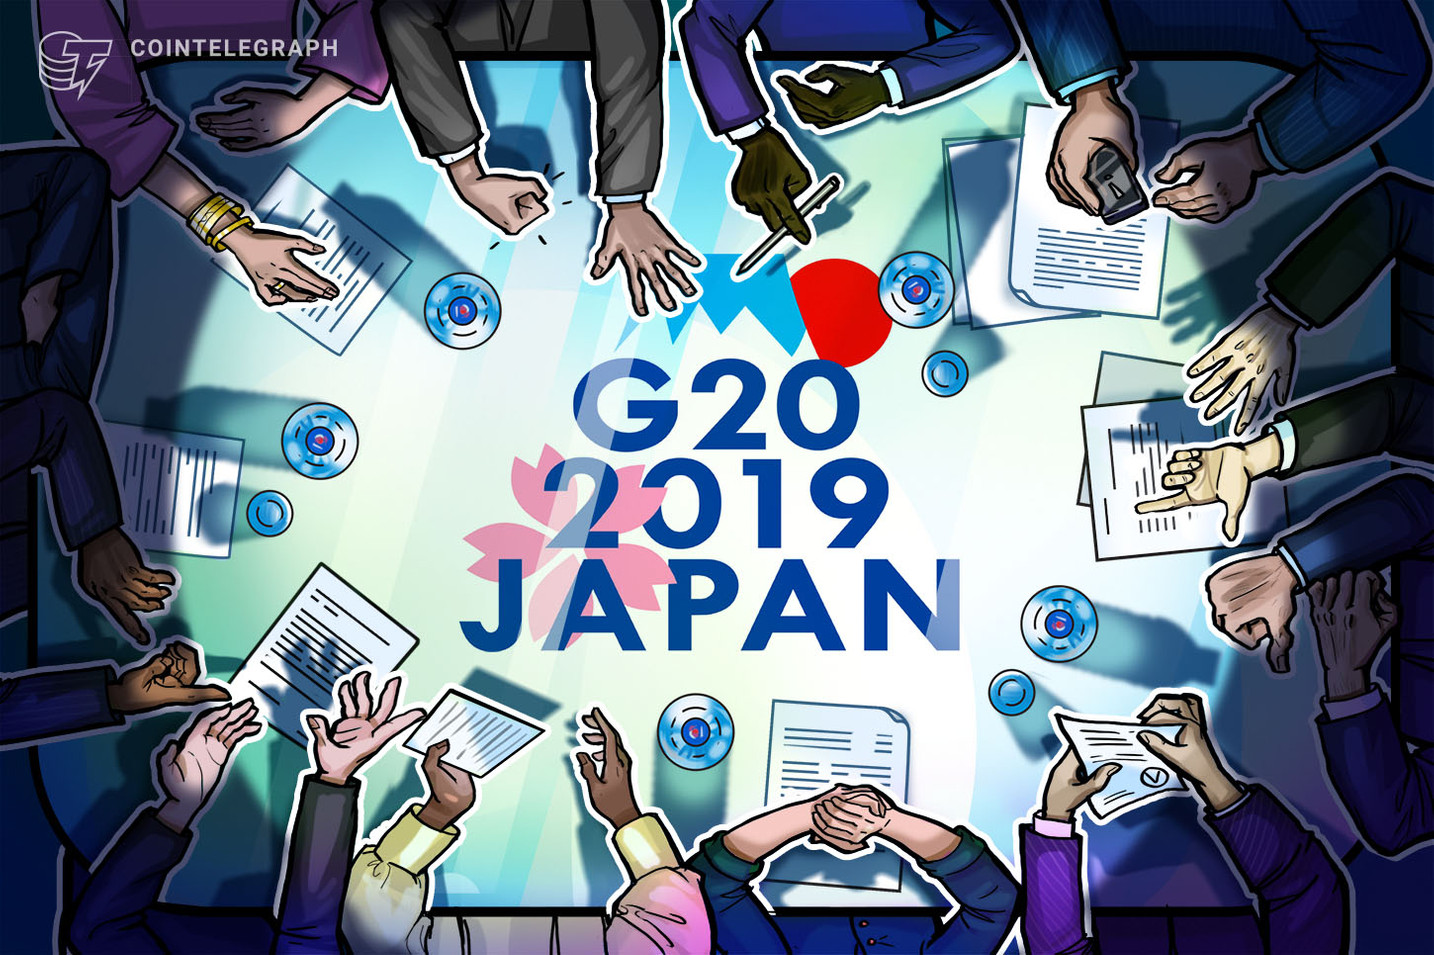 G20 Leaders Reaffirm Position on Cryptocurrencies in Statement